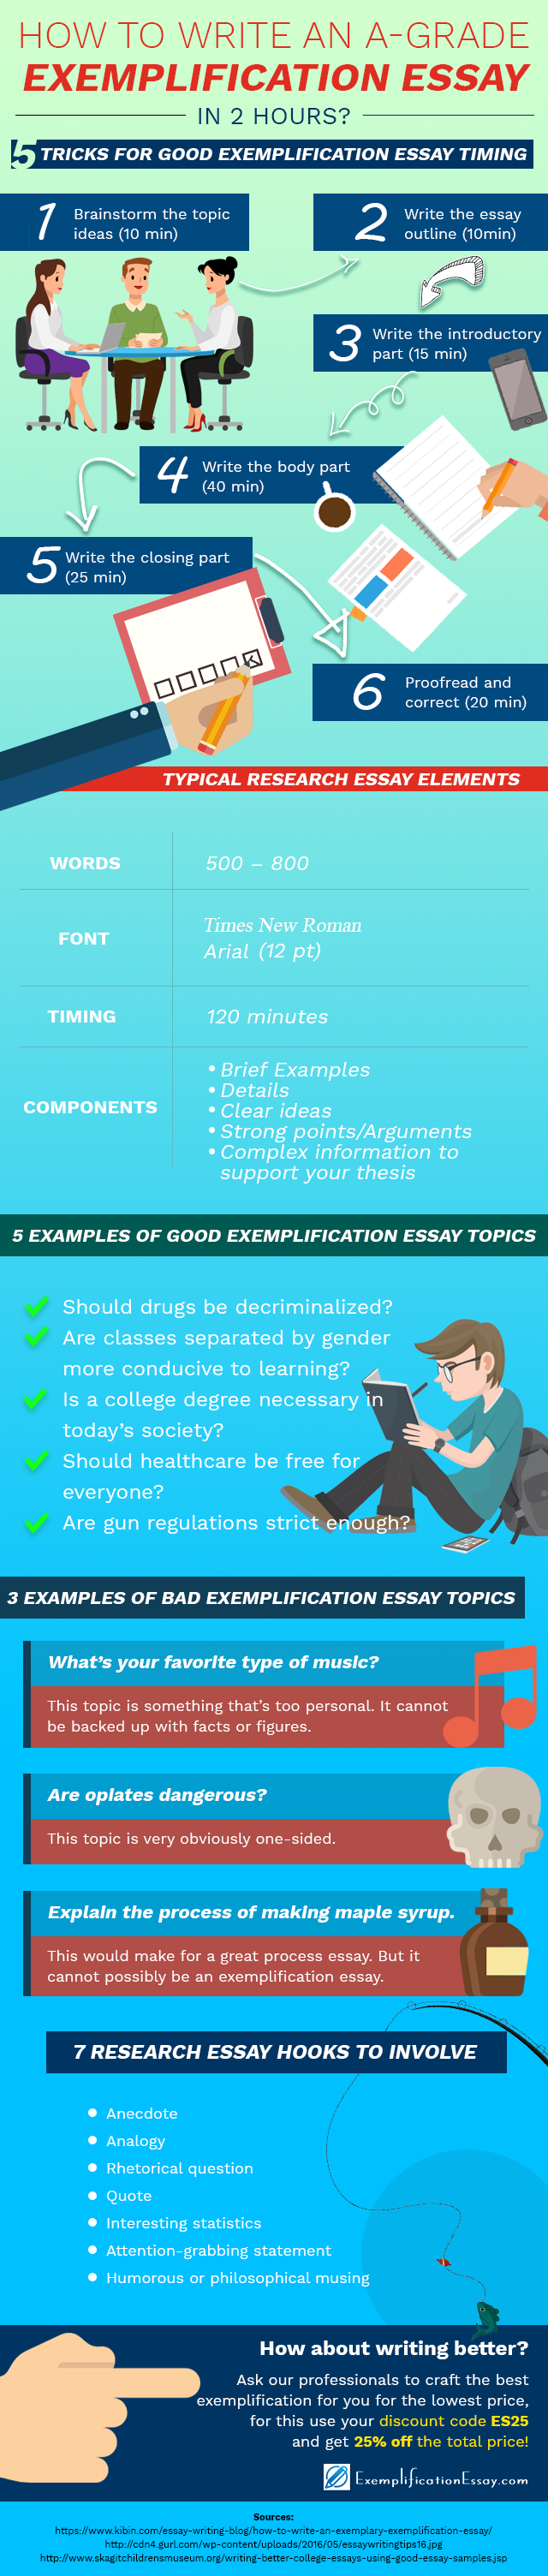 001 Pin by Exemplification Essay Infographics on How to Write